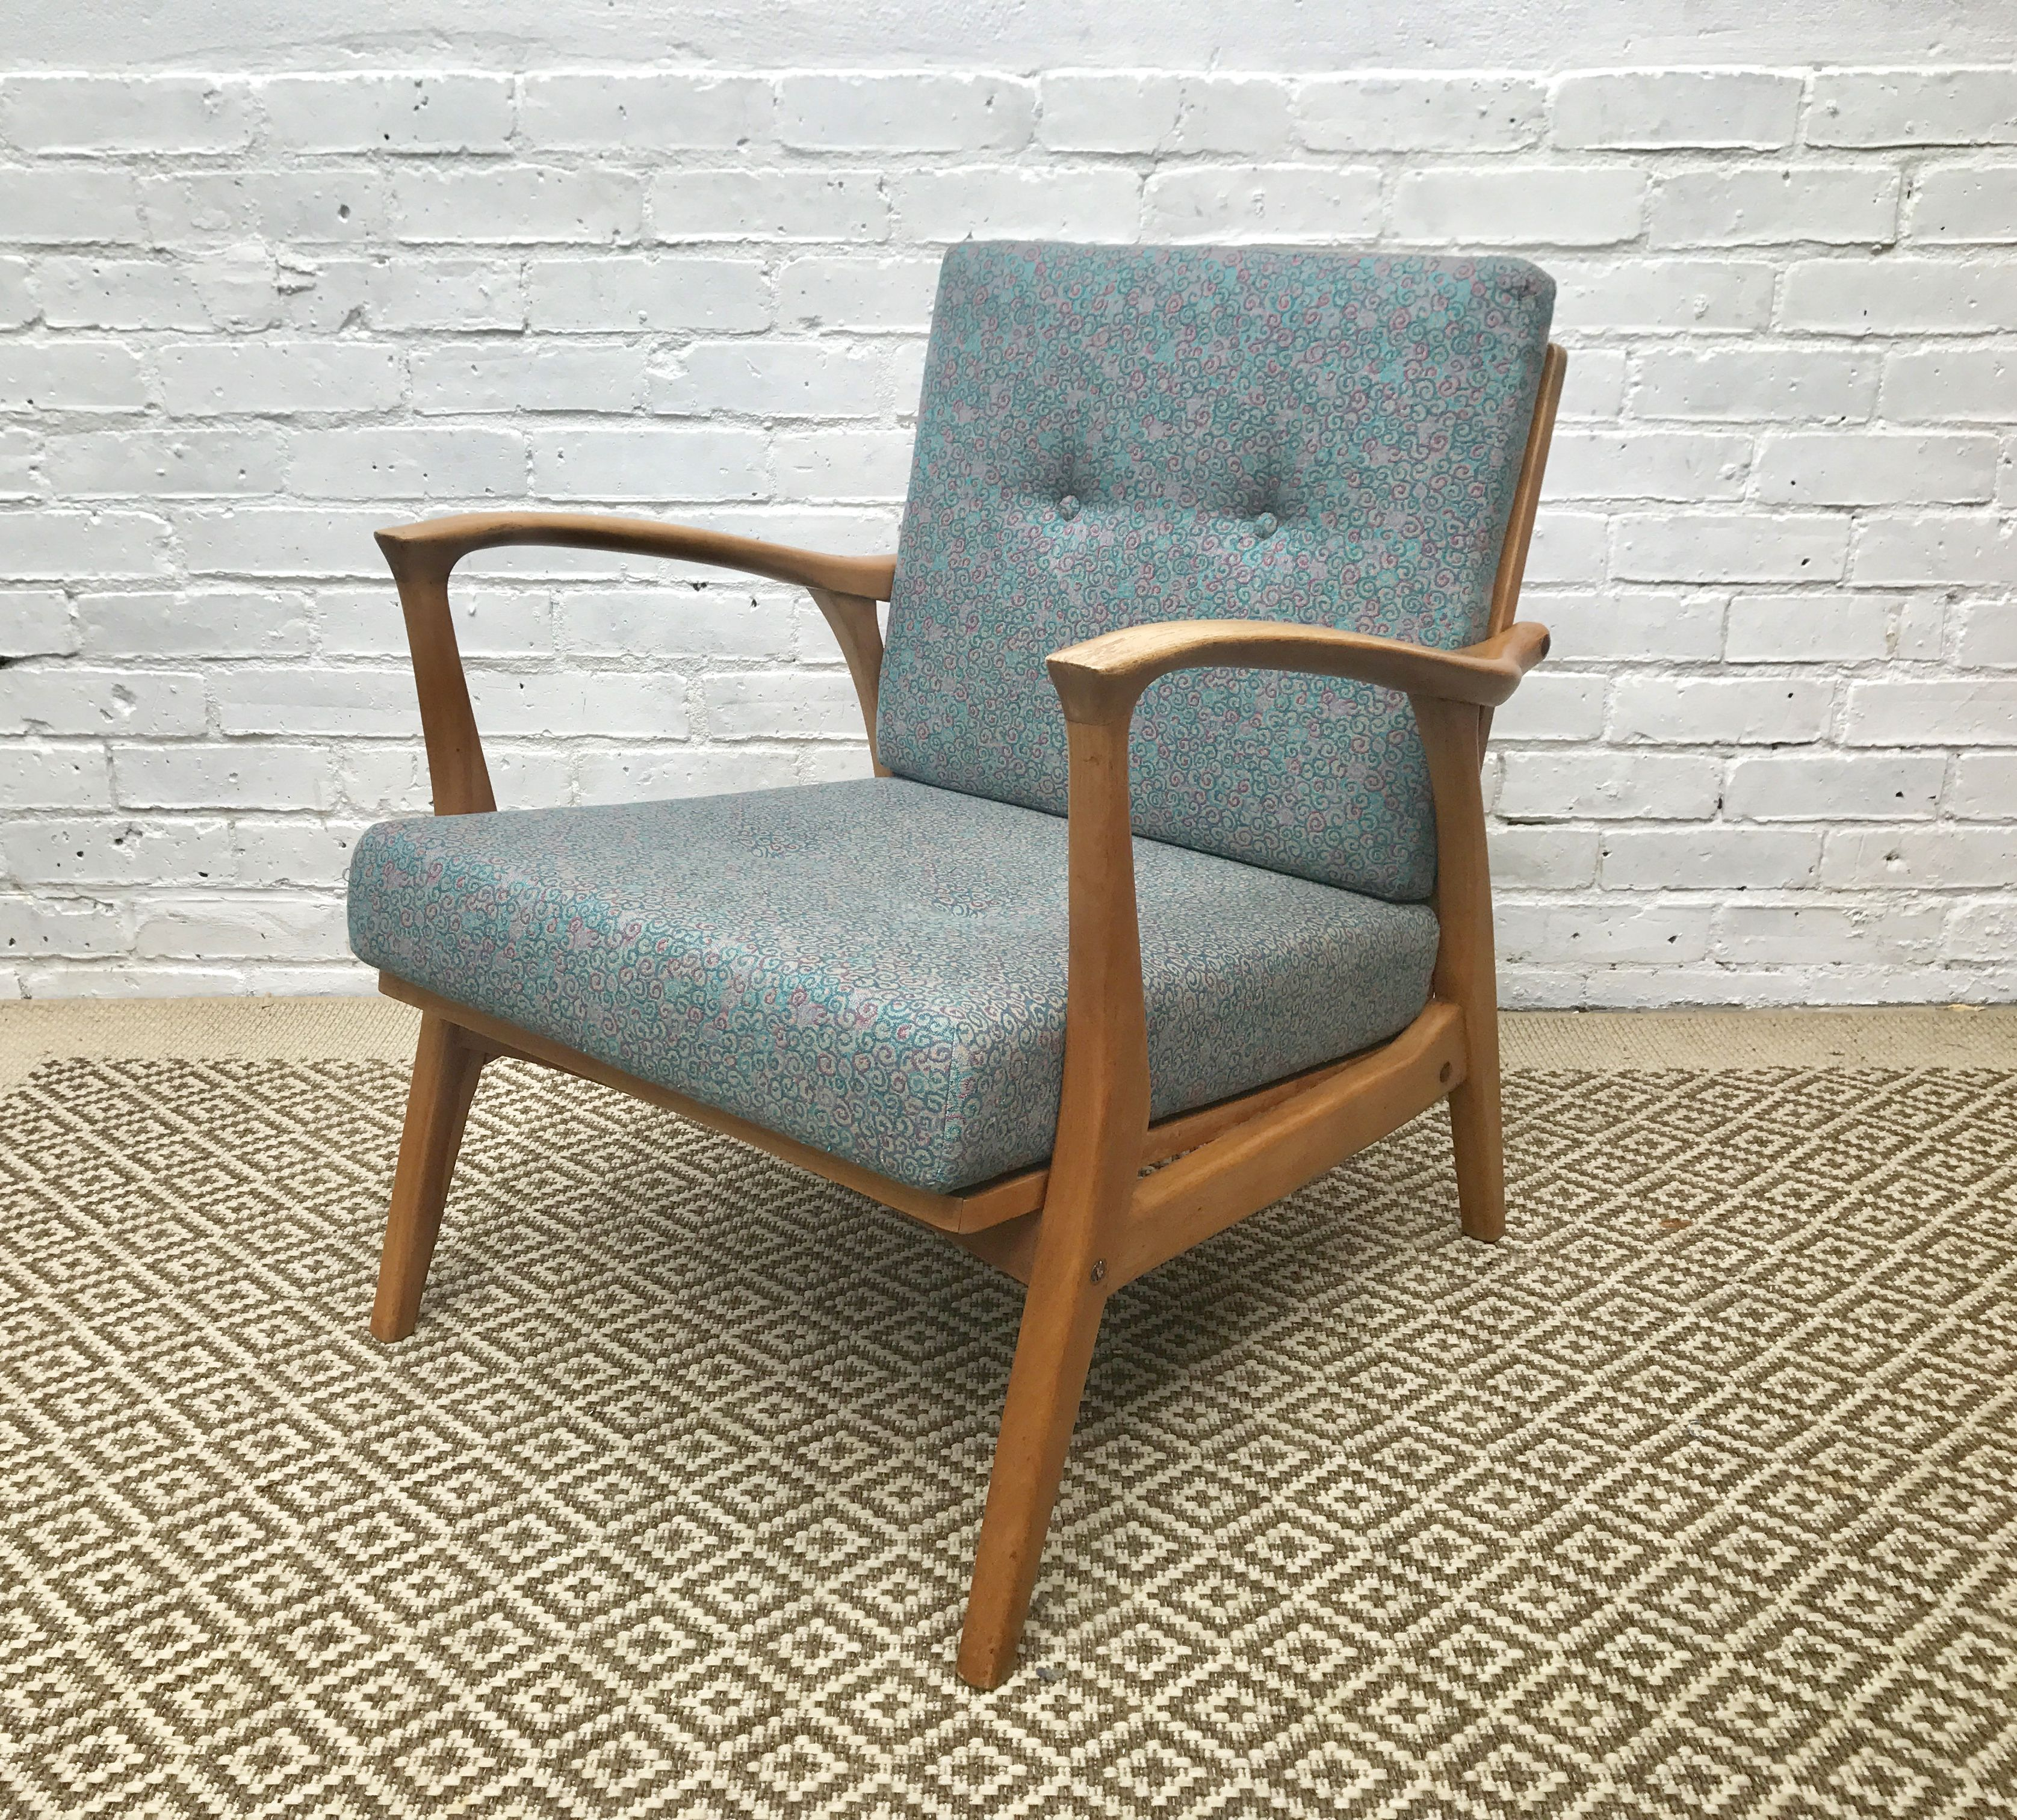 Mid Century Scandinavian Wooden Armchair 1960s 196 Home Wooden Armchair Armchair Blue Chairs Living Room